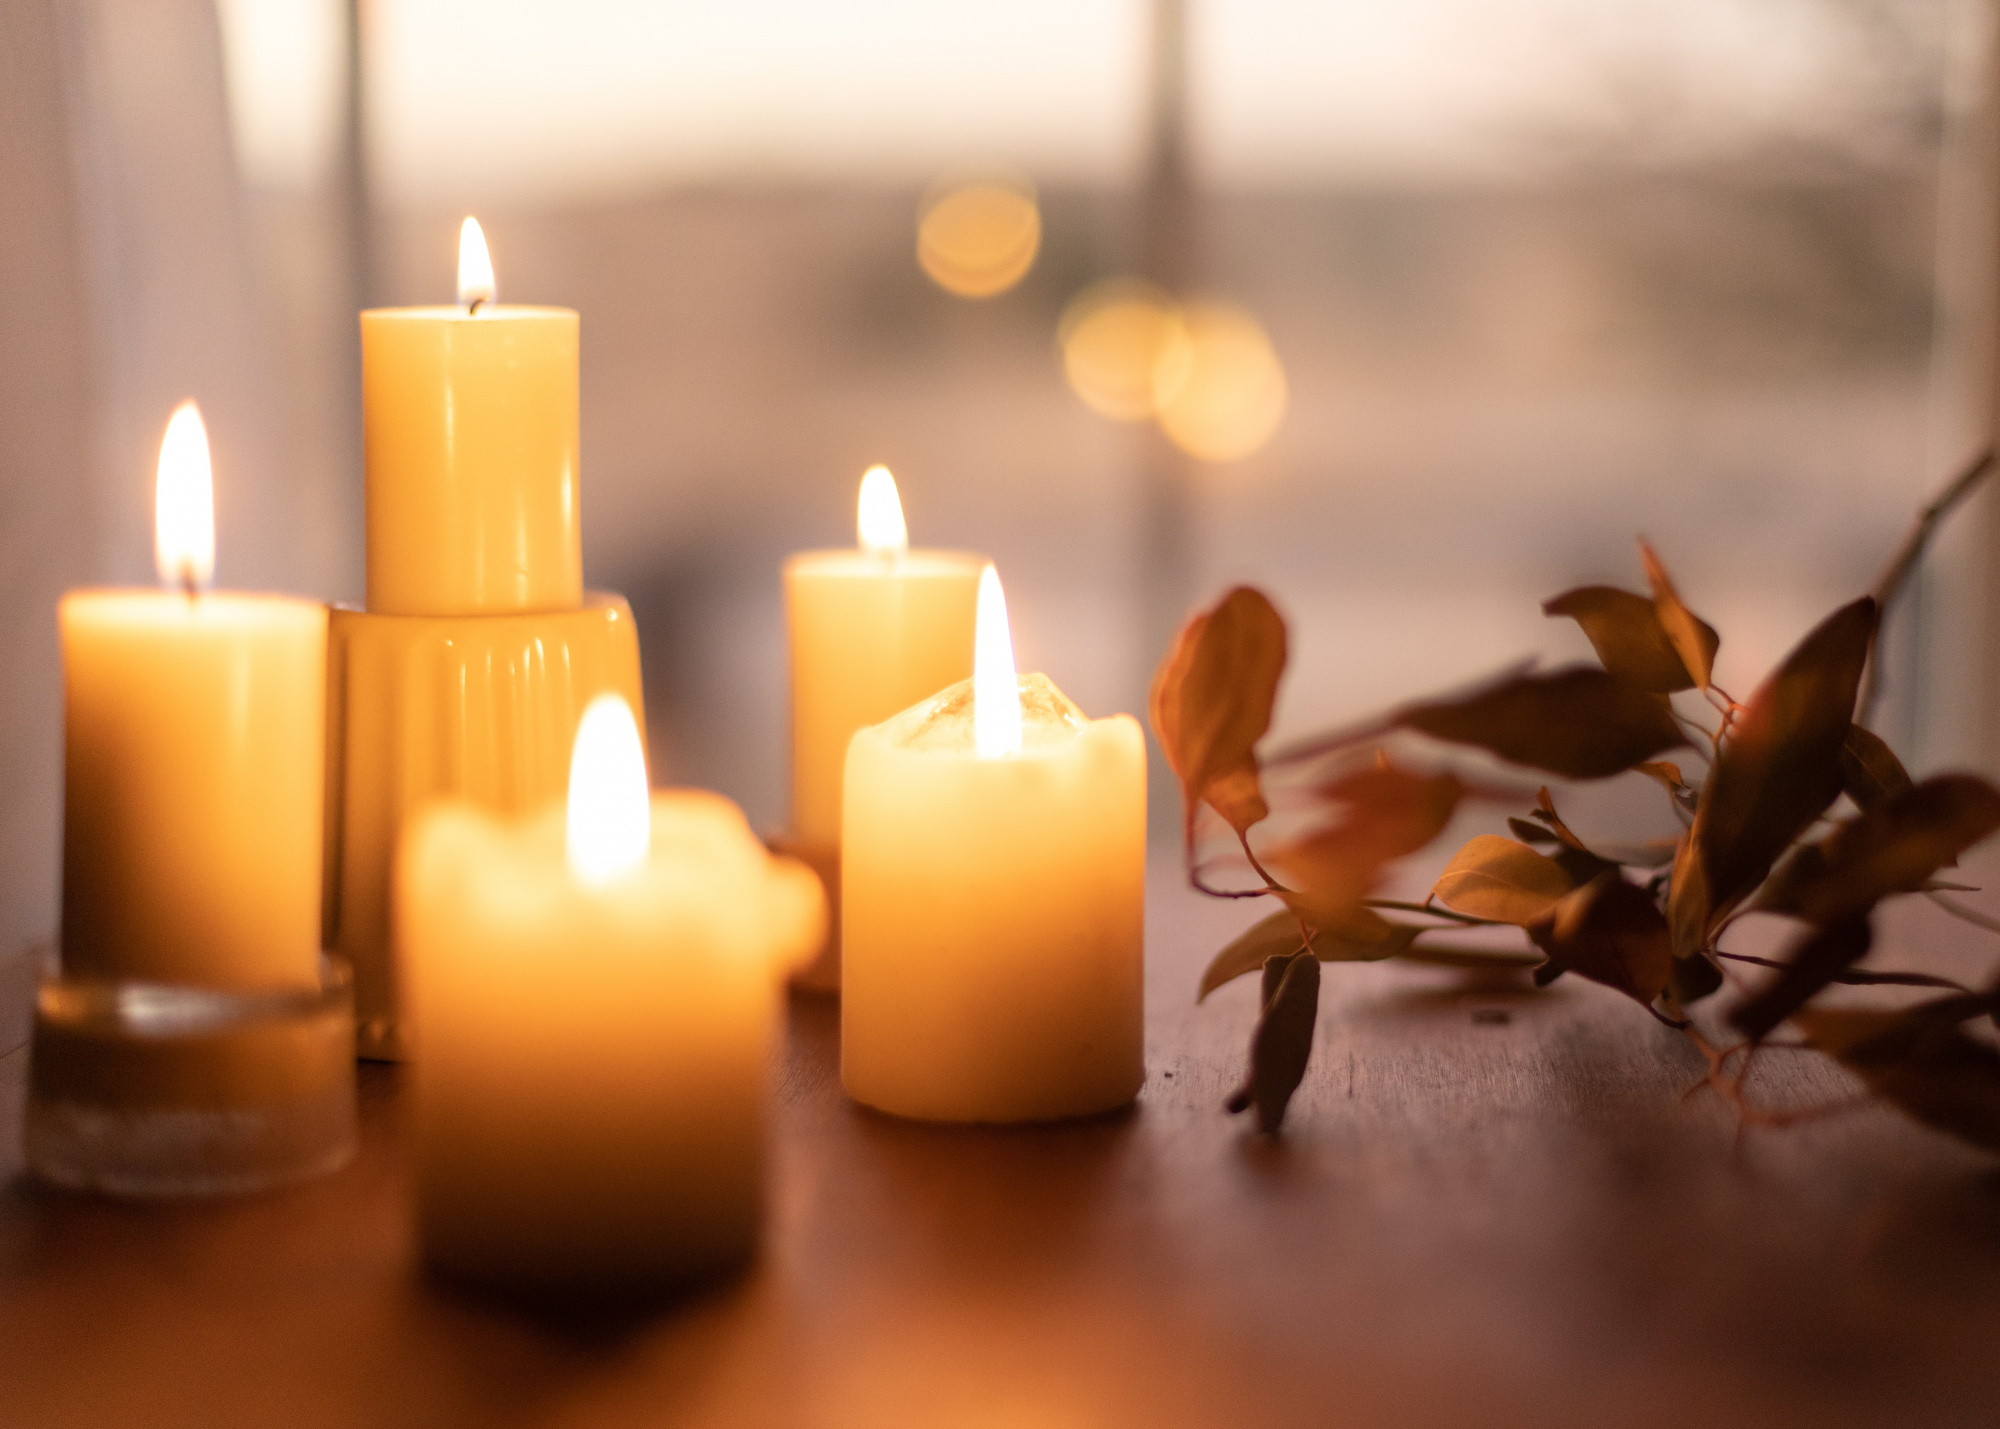 fall-scented candles, home décor with lit candles and leaves on a wooden table